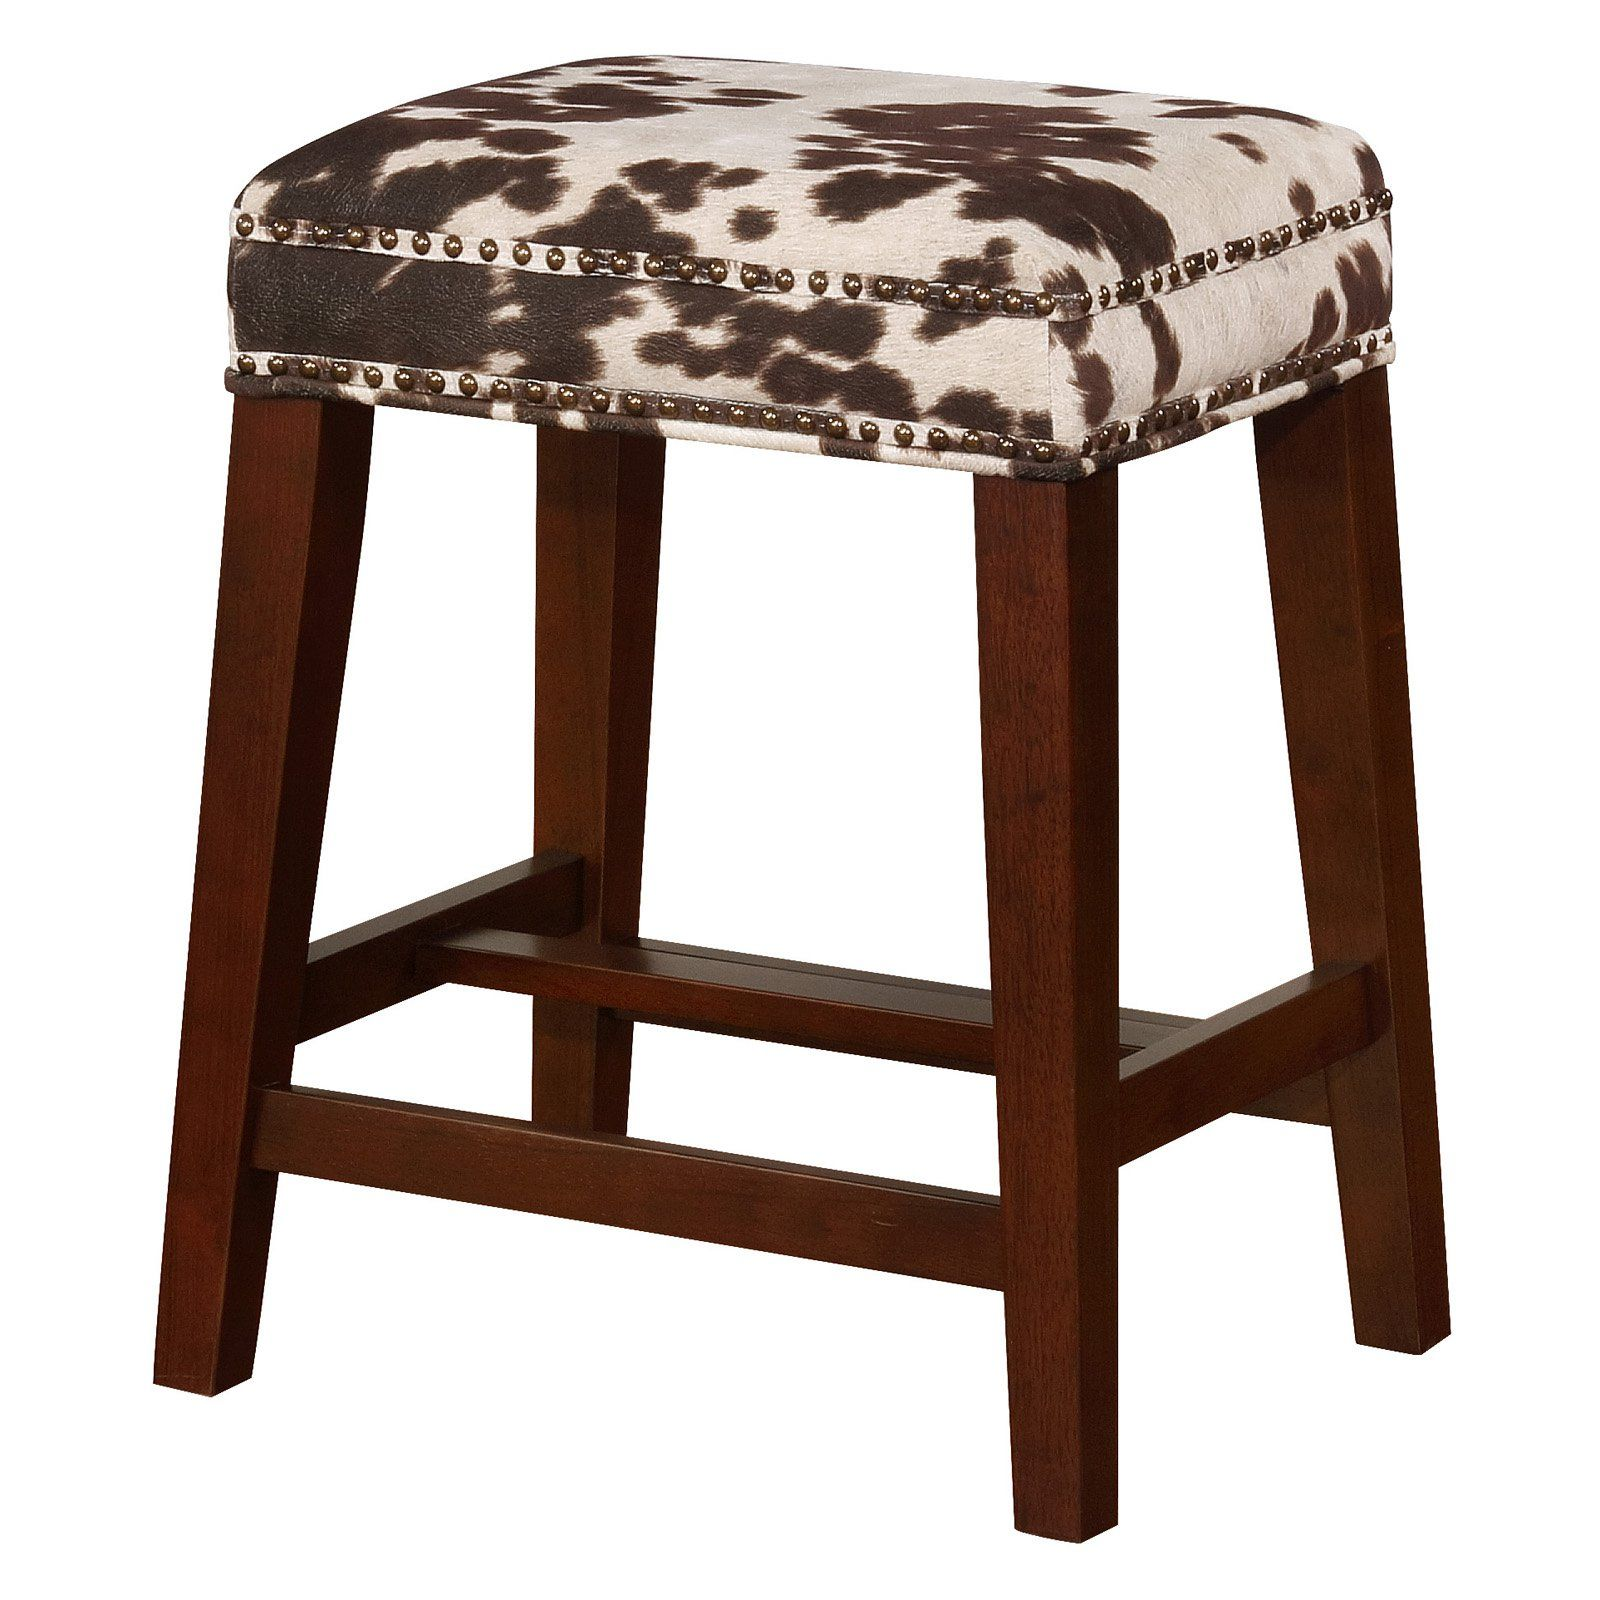 Home Counter stools, Wood counter stools, Counter height